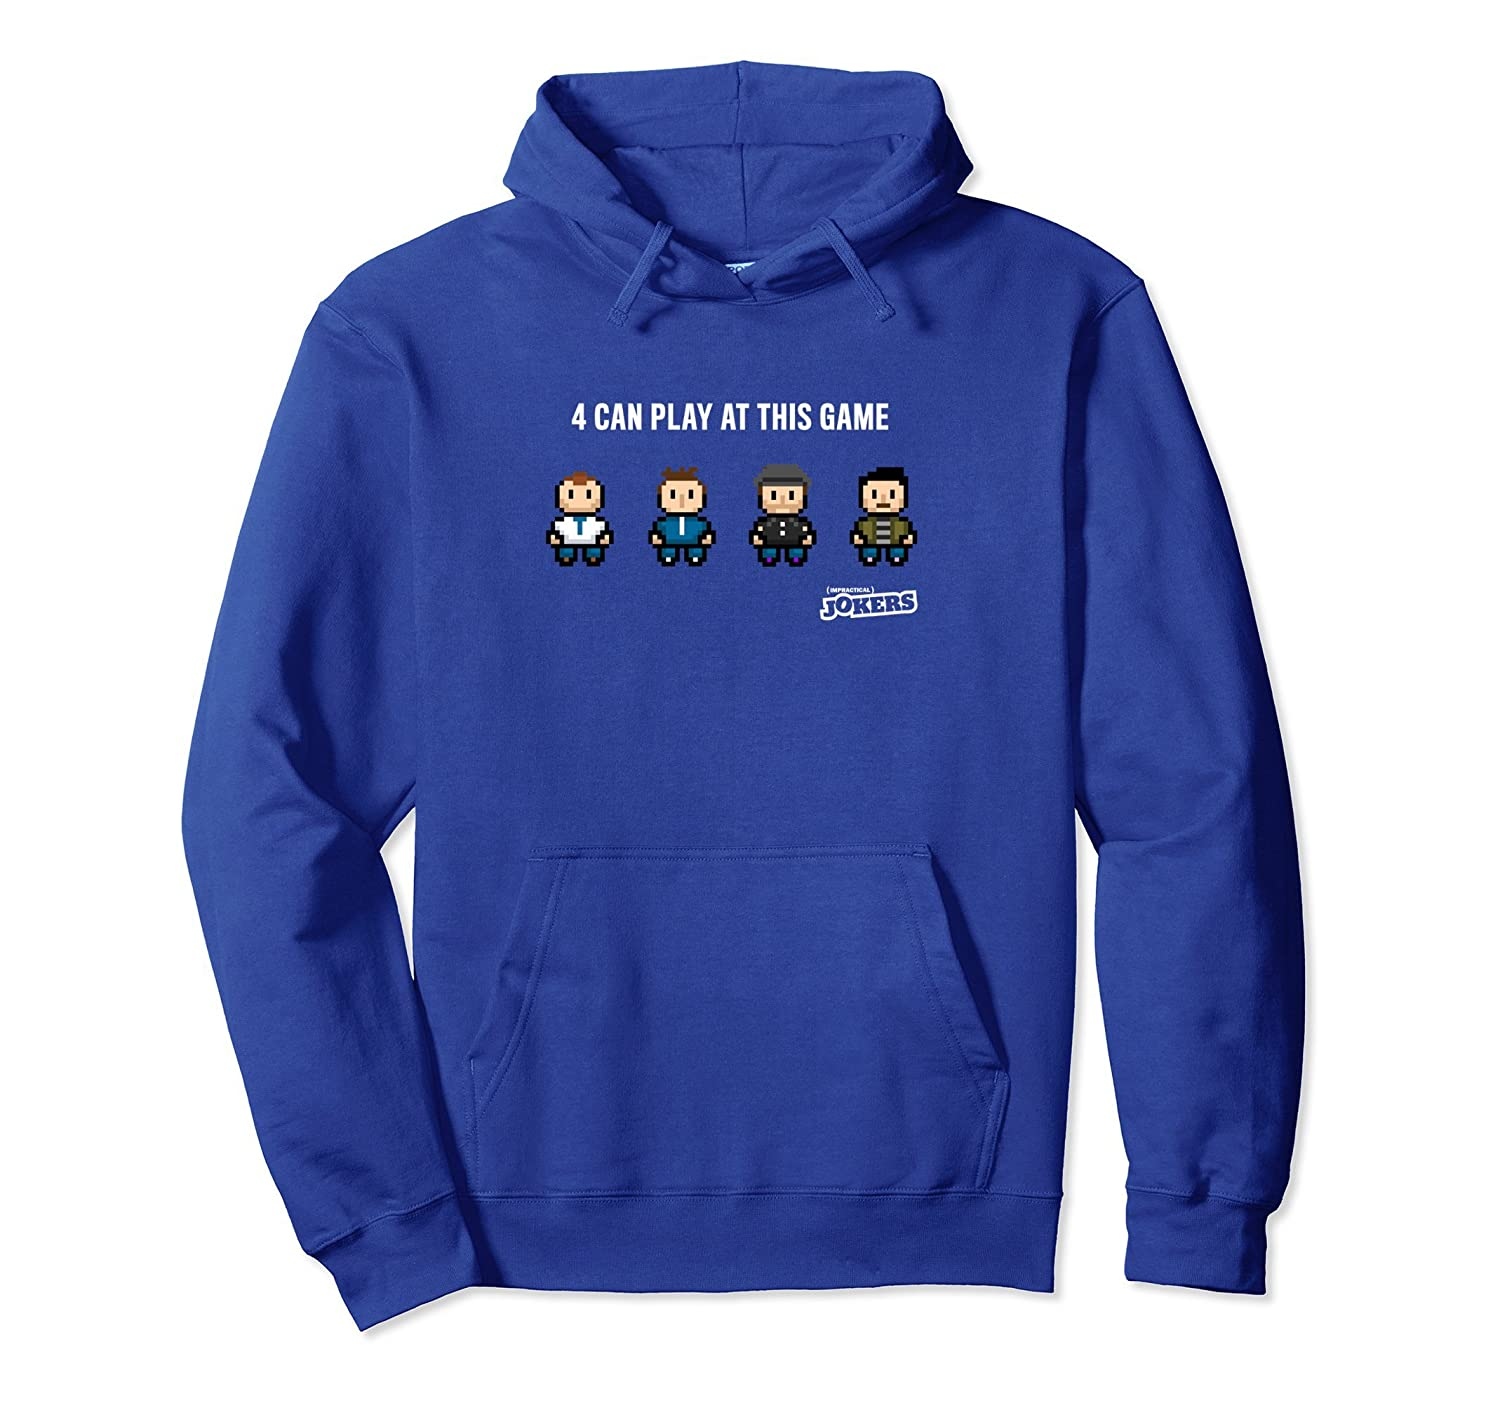 4 Can Play at This Game Hooded Sweatshirt-ah my shirt one gift